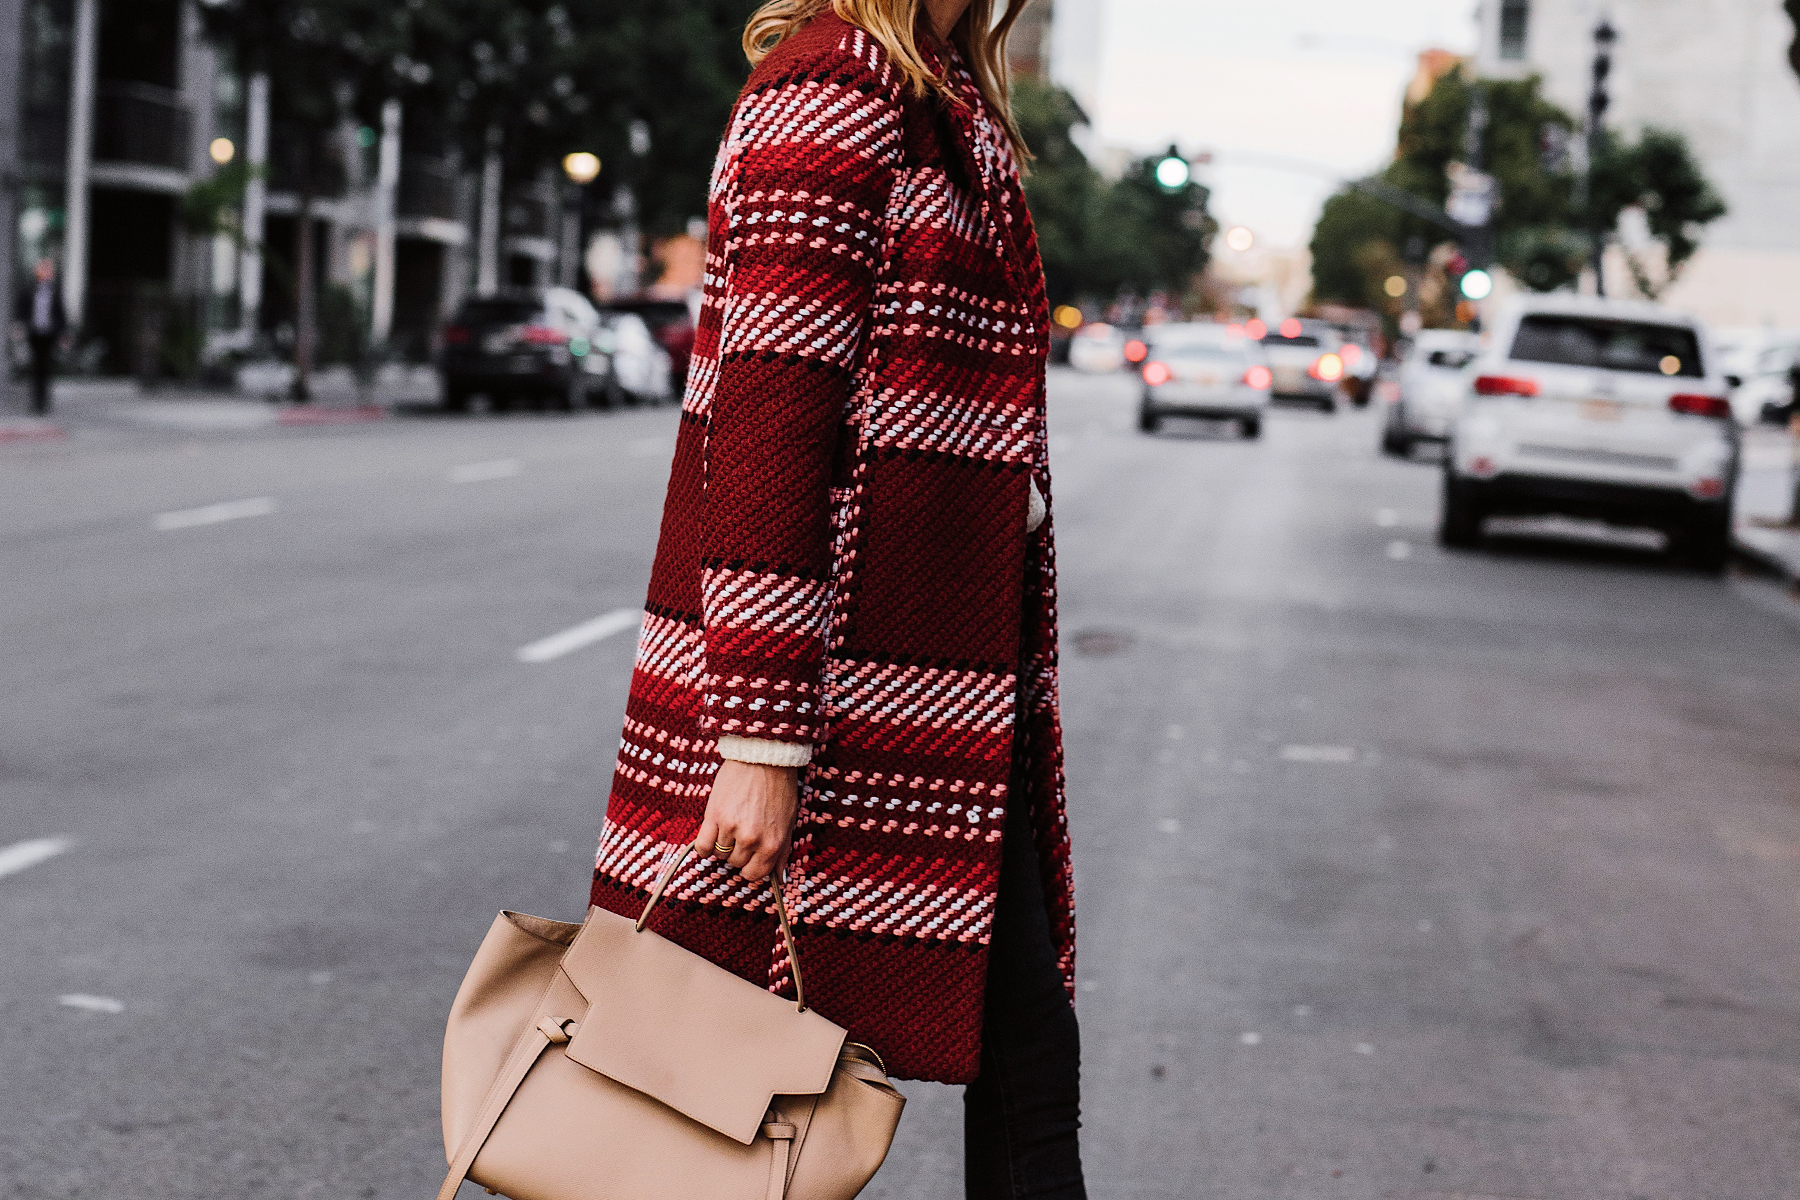 Woman Wearing Express Red Plaid Coat Celine Mini Belt Bag Fashion Jackson San Diego Fashion Blogger Street Style